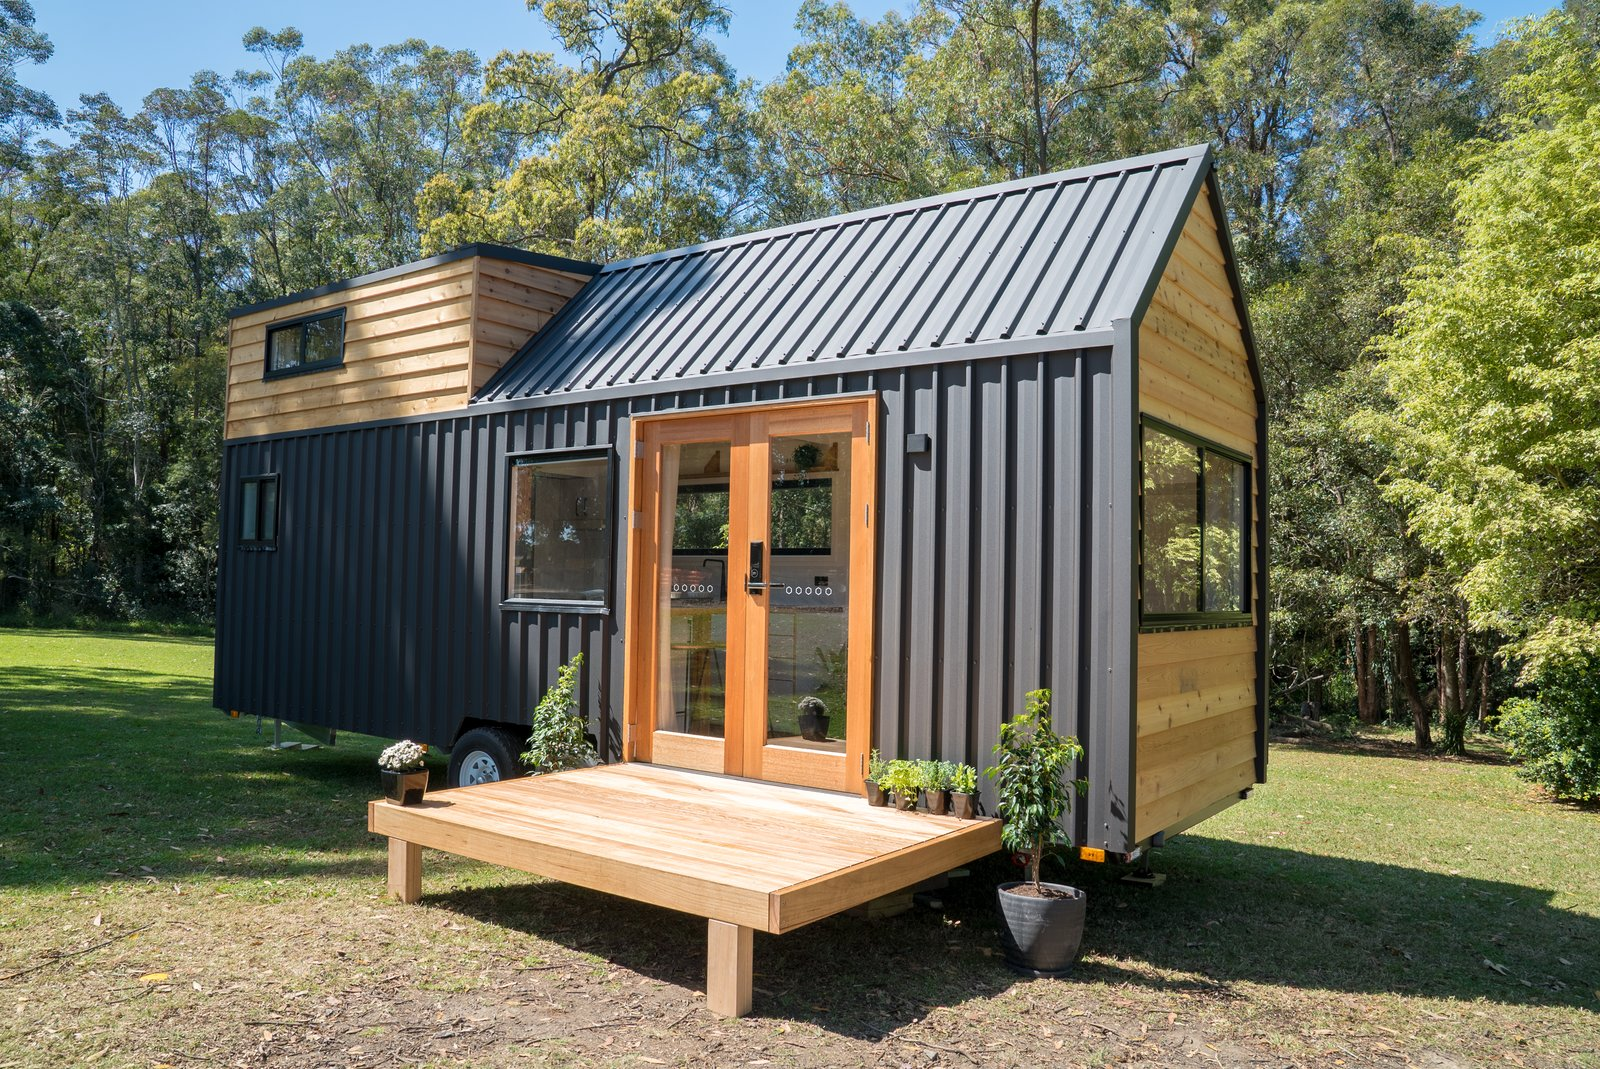 This Innovative Tiny Home With a Slide-Out Lounge Starts at $99K